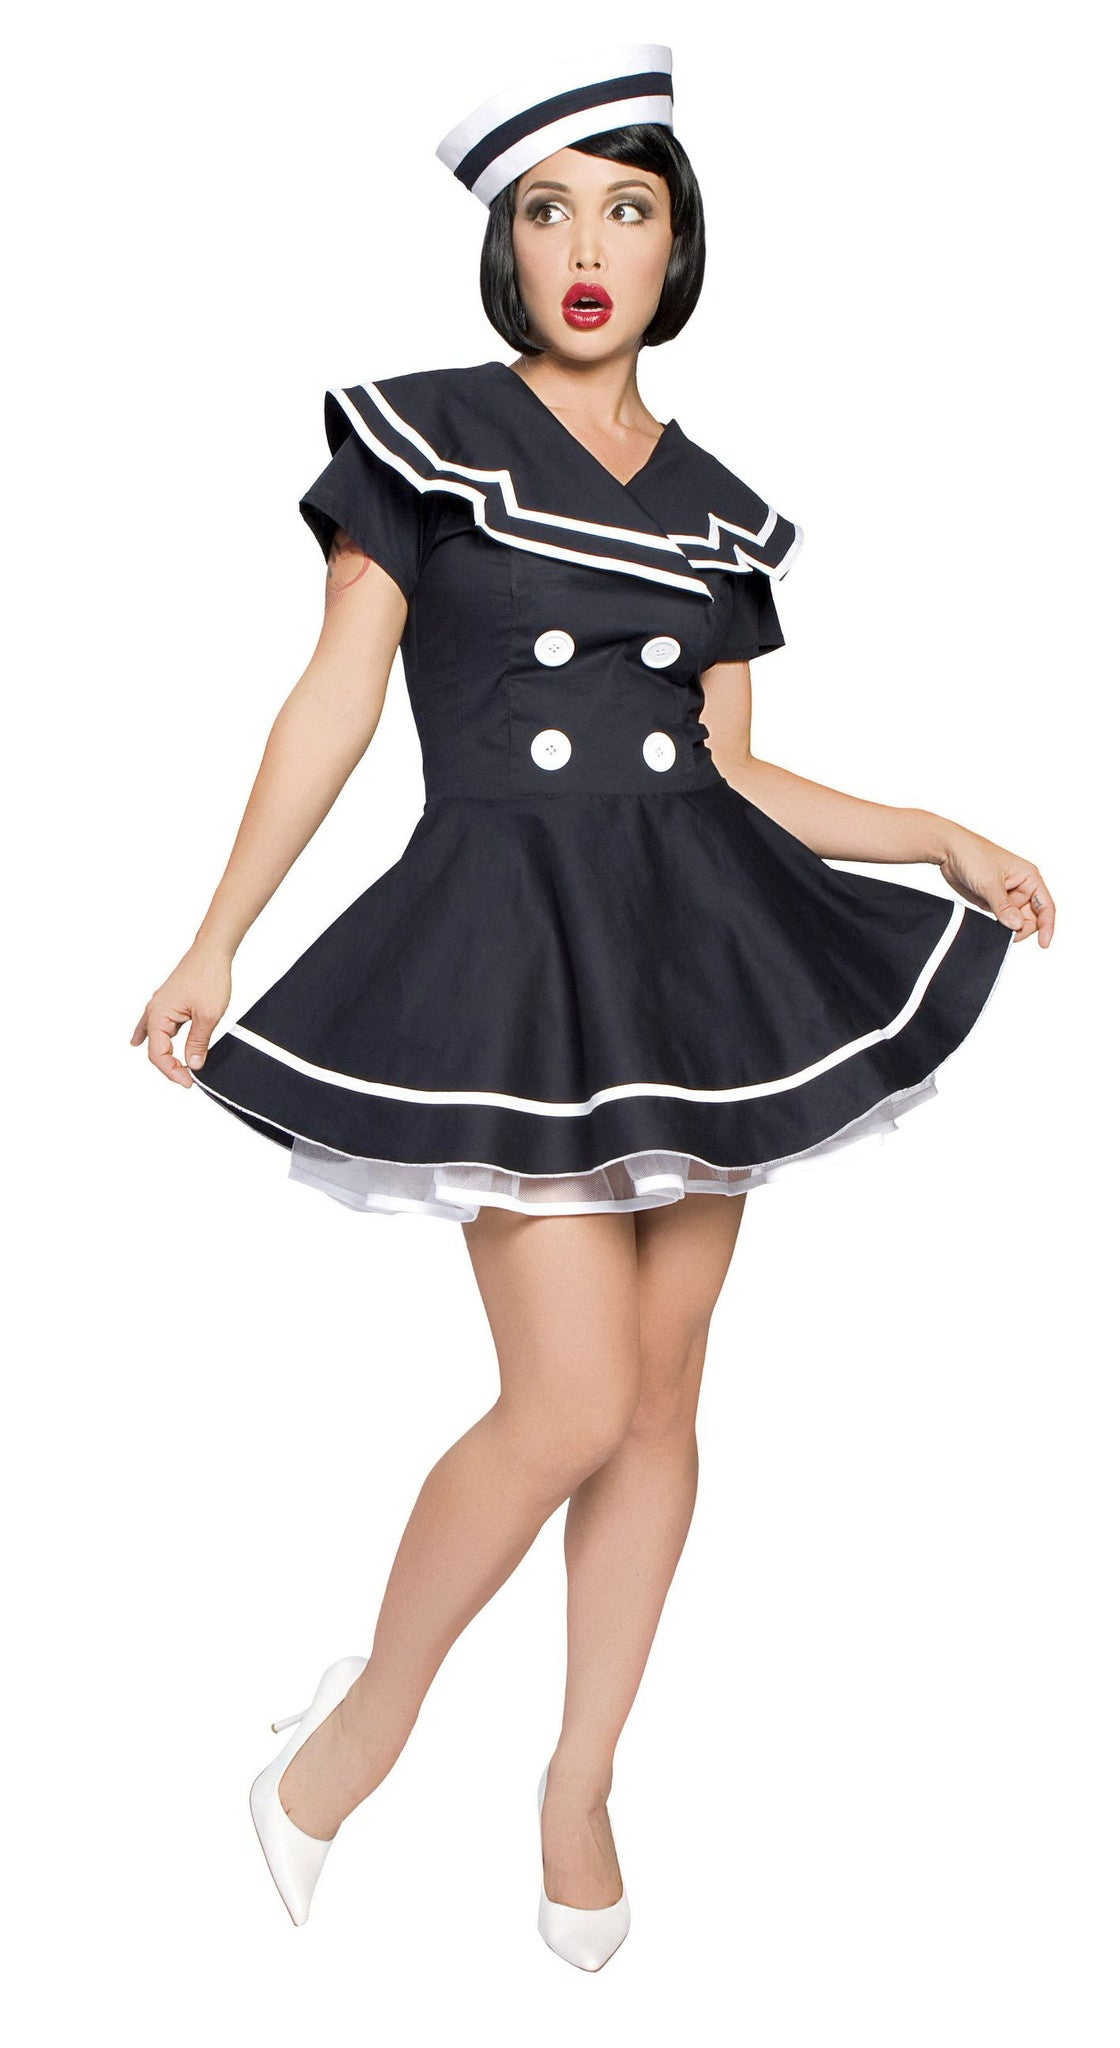 2Pc Pin-Up Captain ${description} | Roma Costume and Roma Confidential wholesale manufacturer of Women Apparel bulk world wide wholesale and world wide drop ship services for Adult Halloween Costumes, Sexy and Elegant Lingerie, Rave Clothing, Club wear, and Christmas Costumes. Costumes, Roma Costume, Inc., Roma Costume, Roma Confidential, Wholesale clothing, drop ship, drop ship service, Wholesale Lingerie, Wholesale Adult Halloween Costumes, Rave Clothing, EDM Clothing, Festival Wear, Christmas Costumes, Clubwear, Club wear.